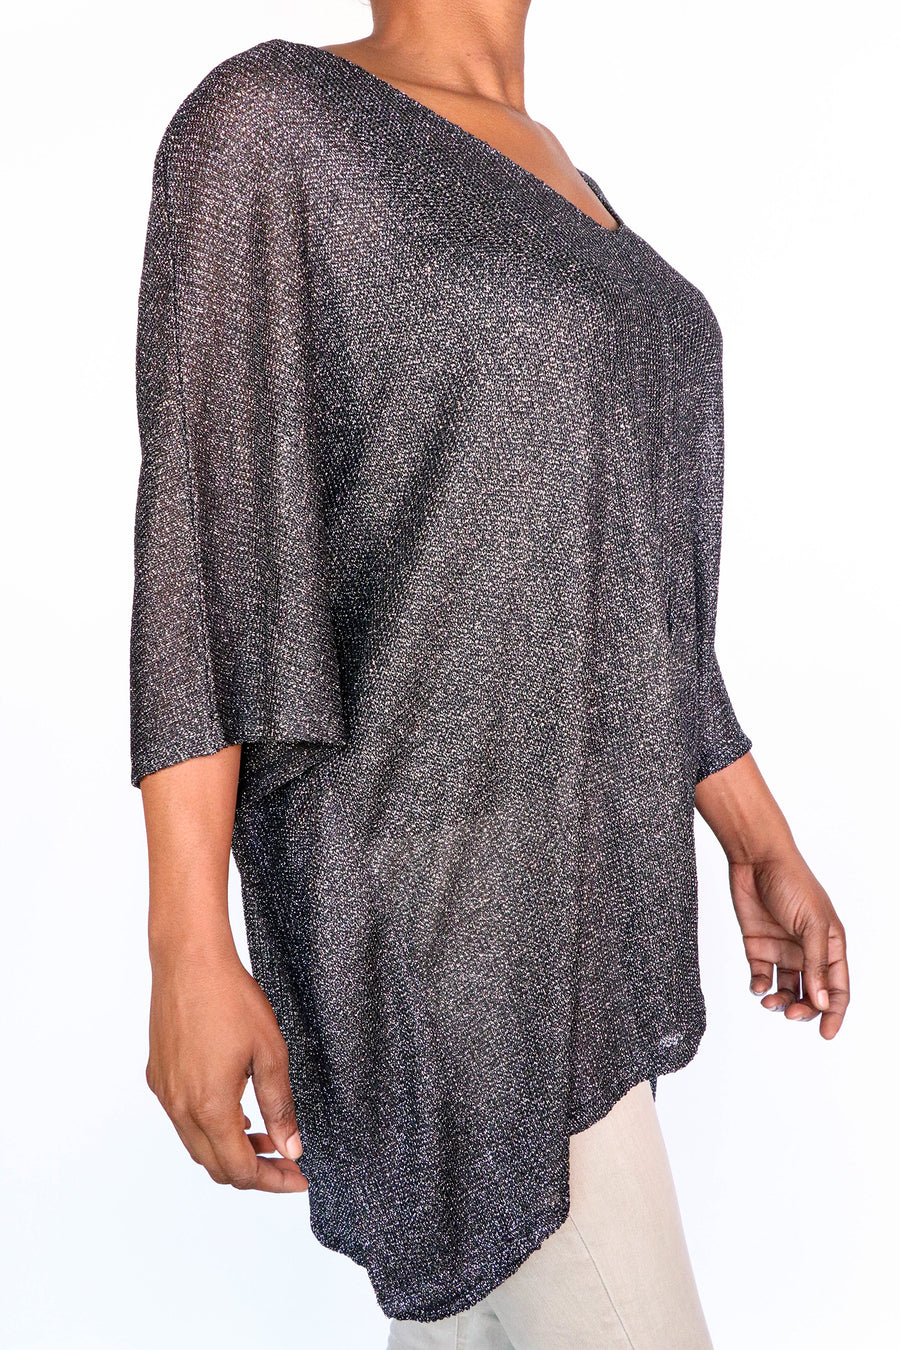 BCBGMAXAZRIA - Black and Silver Knit Blouse - OS